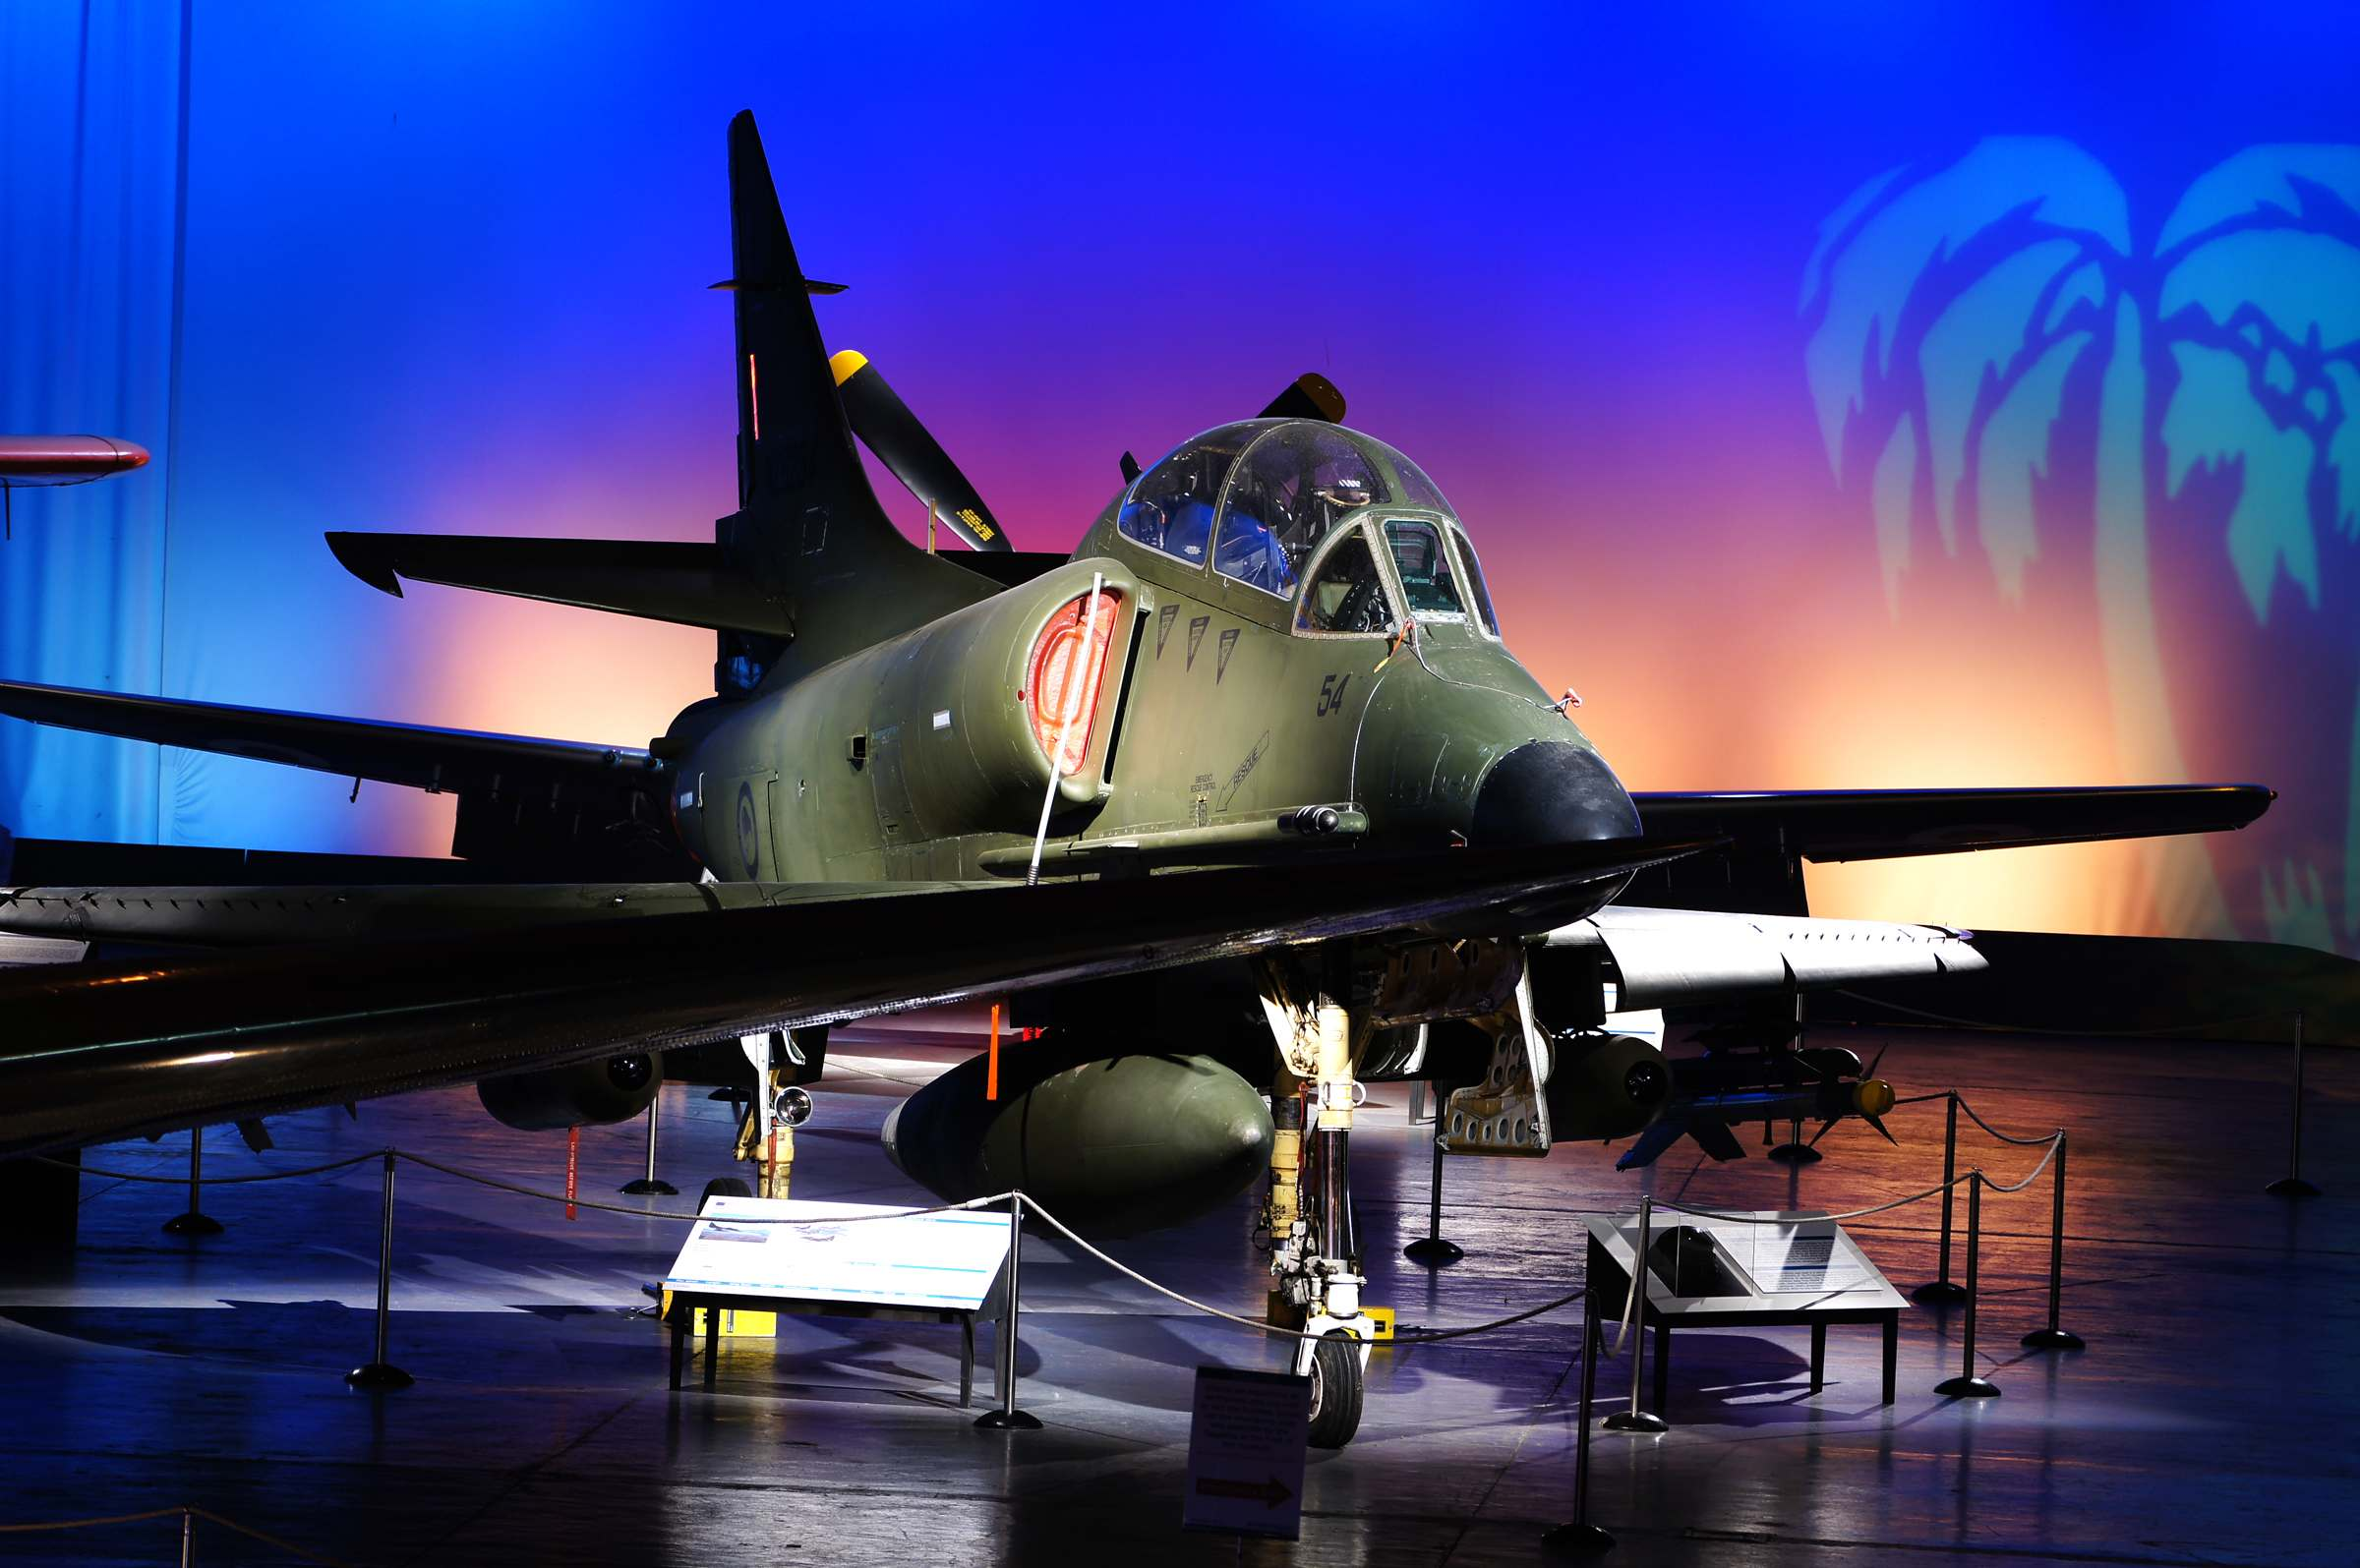 air force nz3 Air Force Museum of New Zealand   Must See Attraction